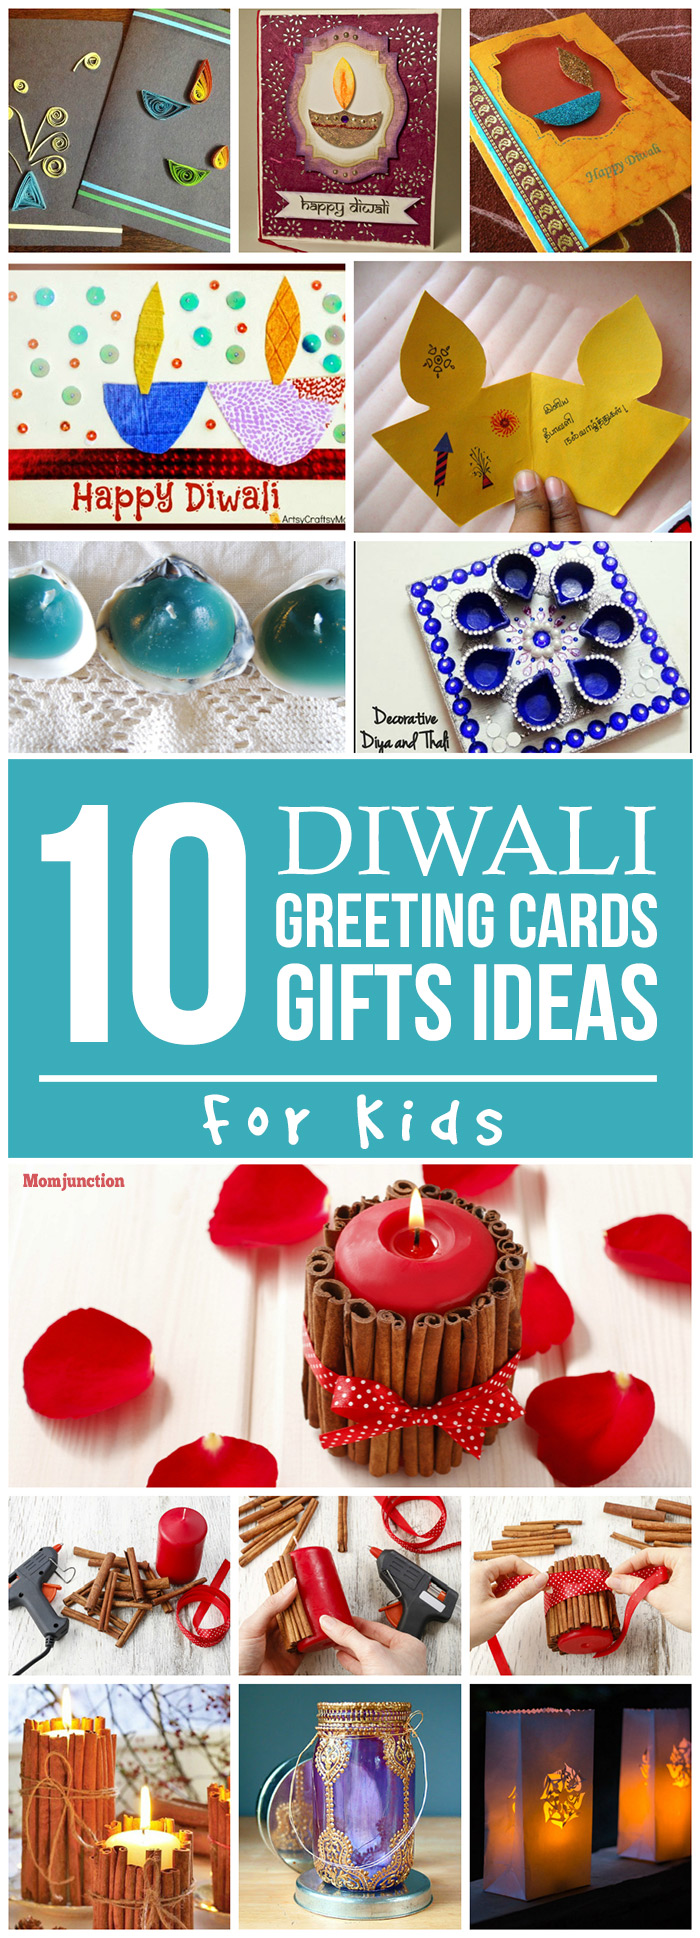 Jpg Images Of Diwali For Kids Zoom Out Wallpaper Ipad Retina Duck